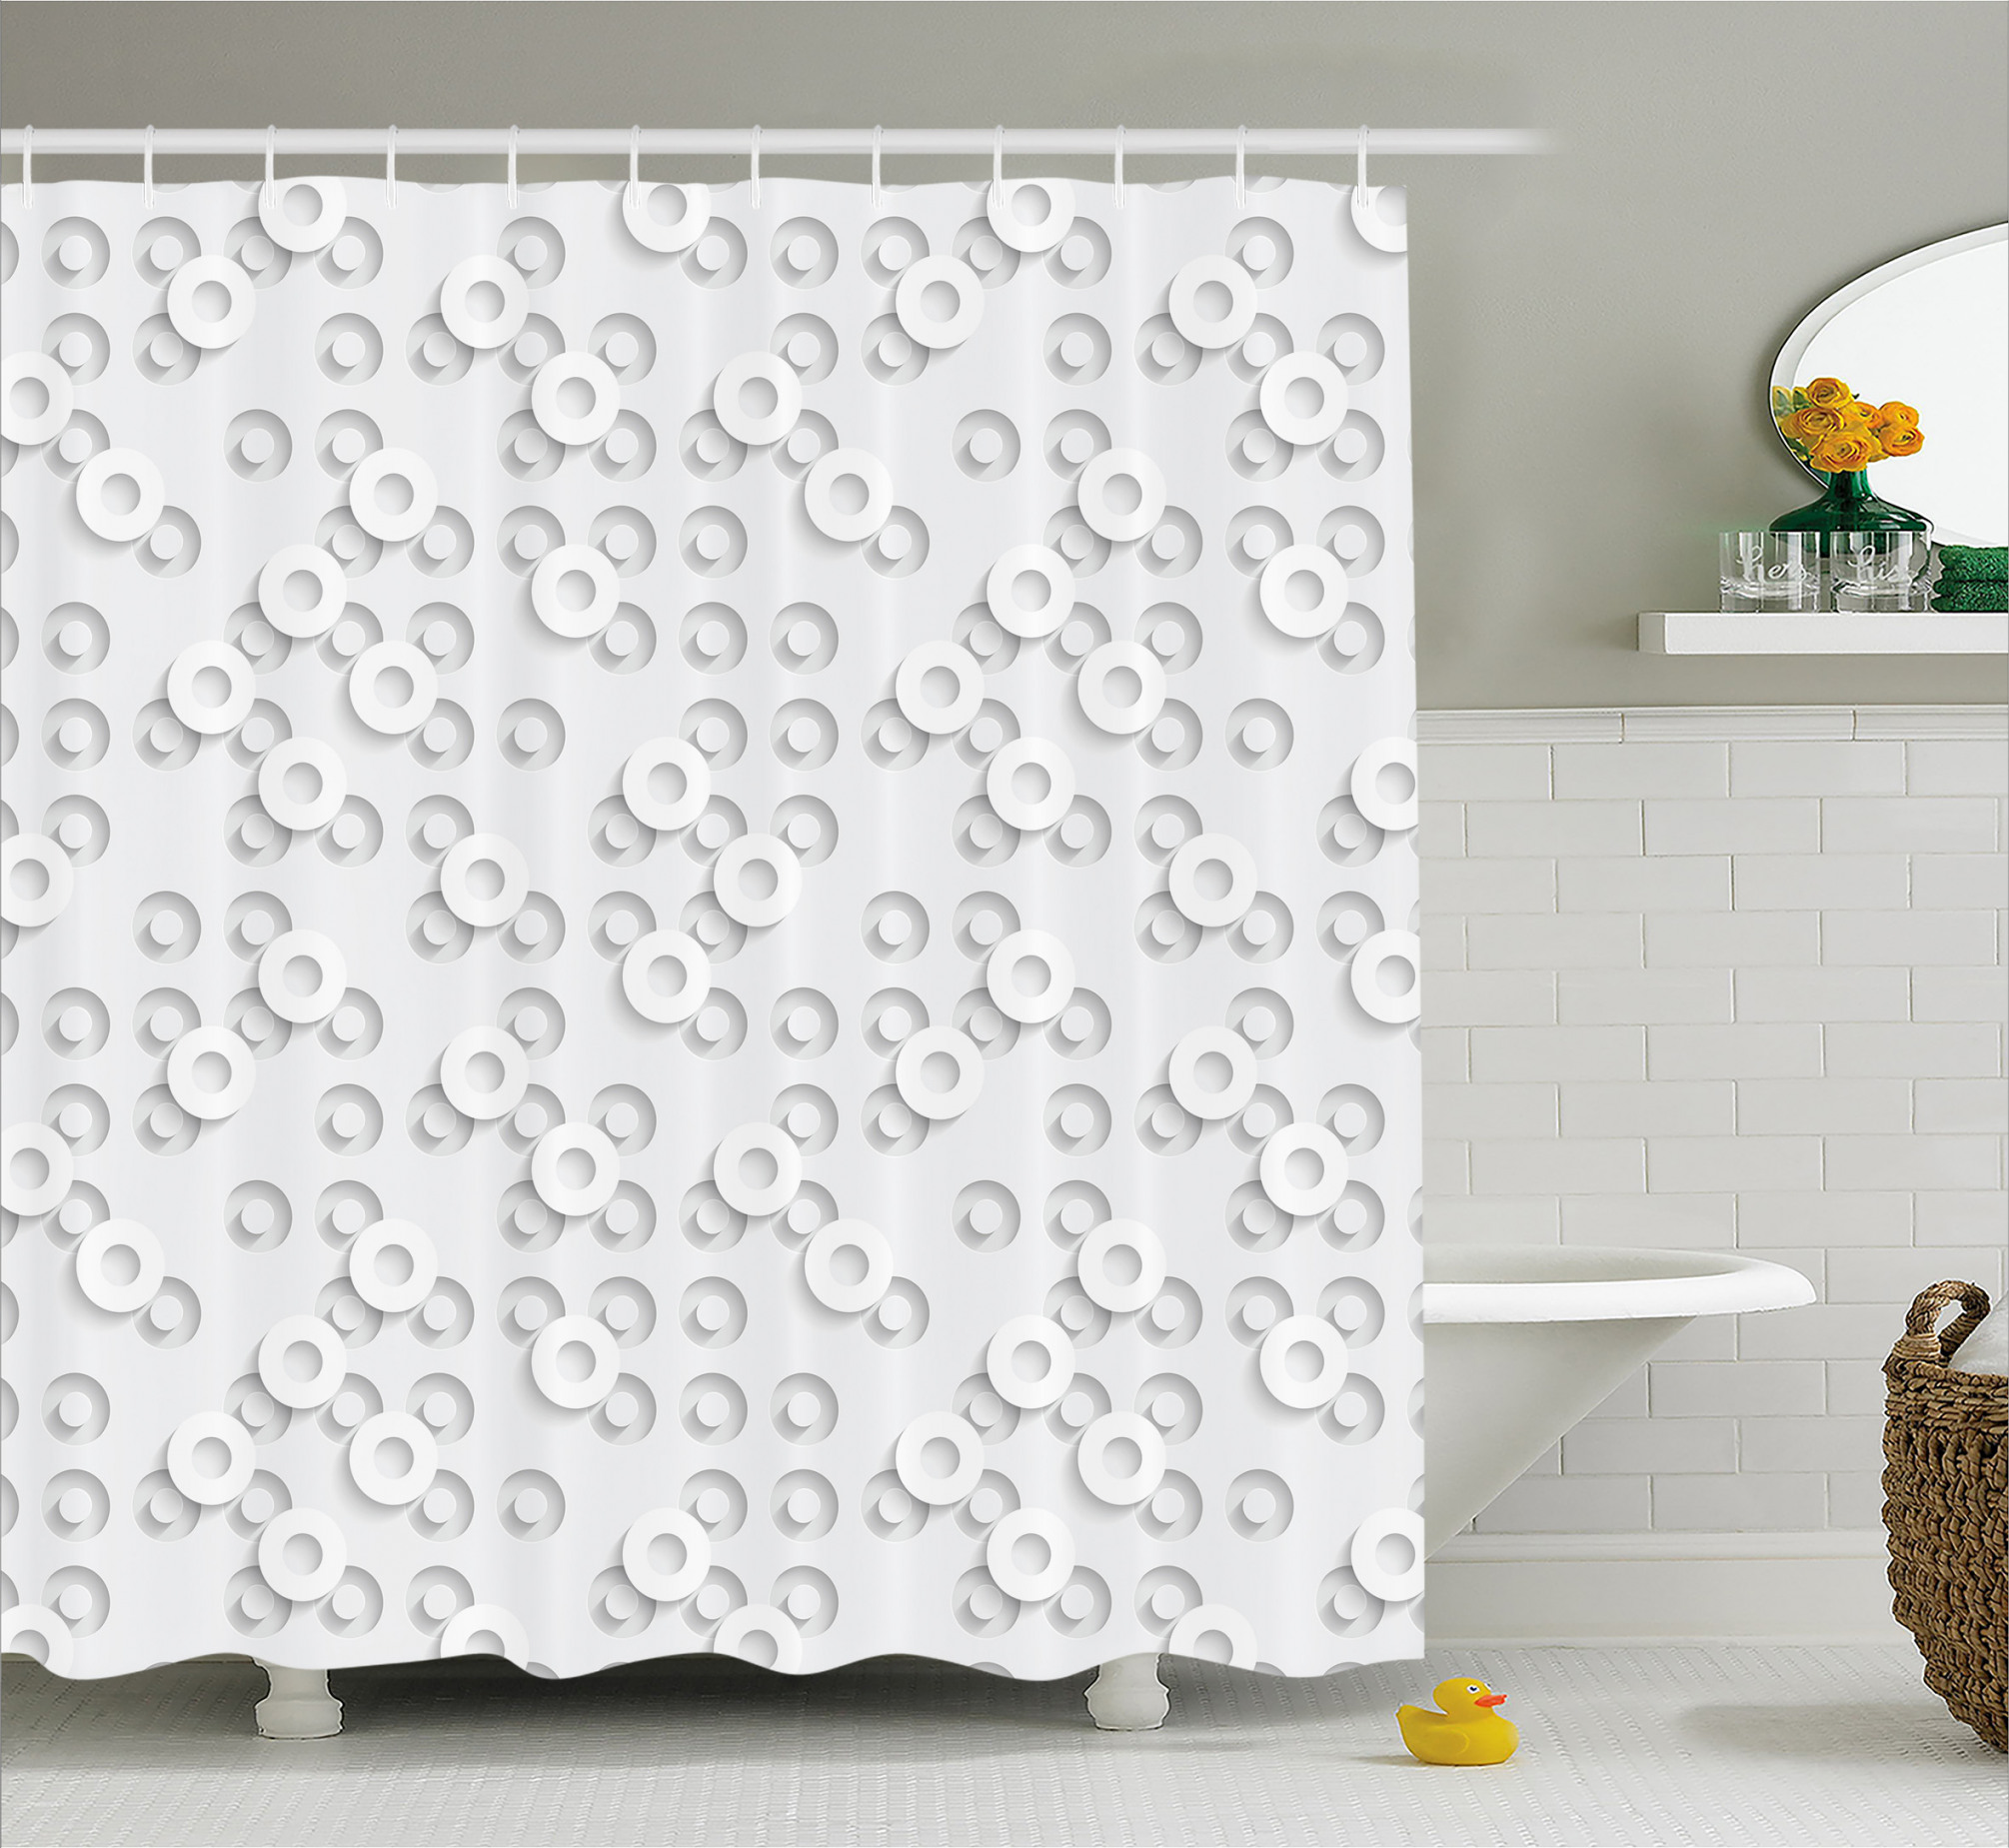 3990 Circuit Band Shower Curtain